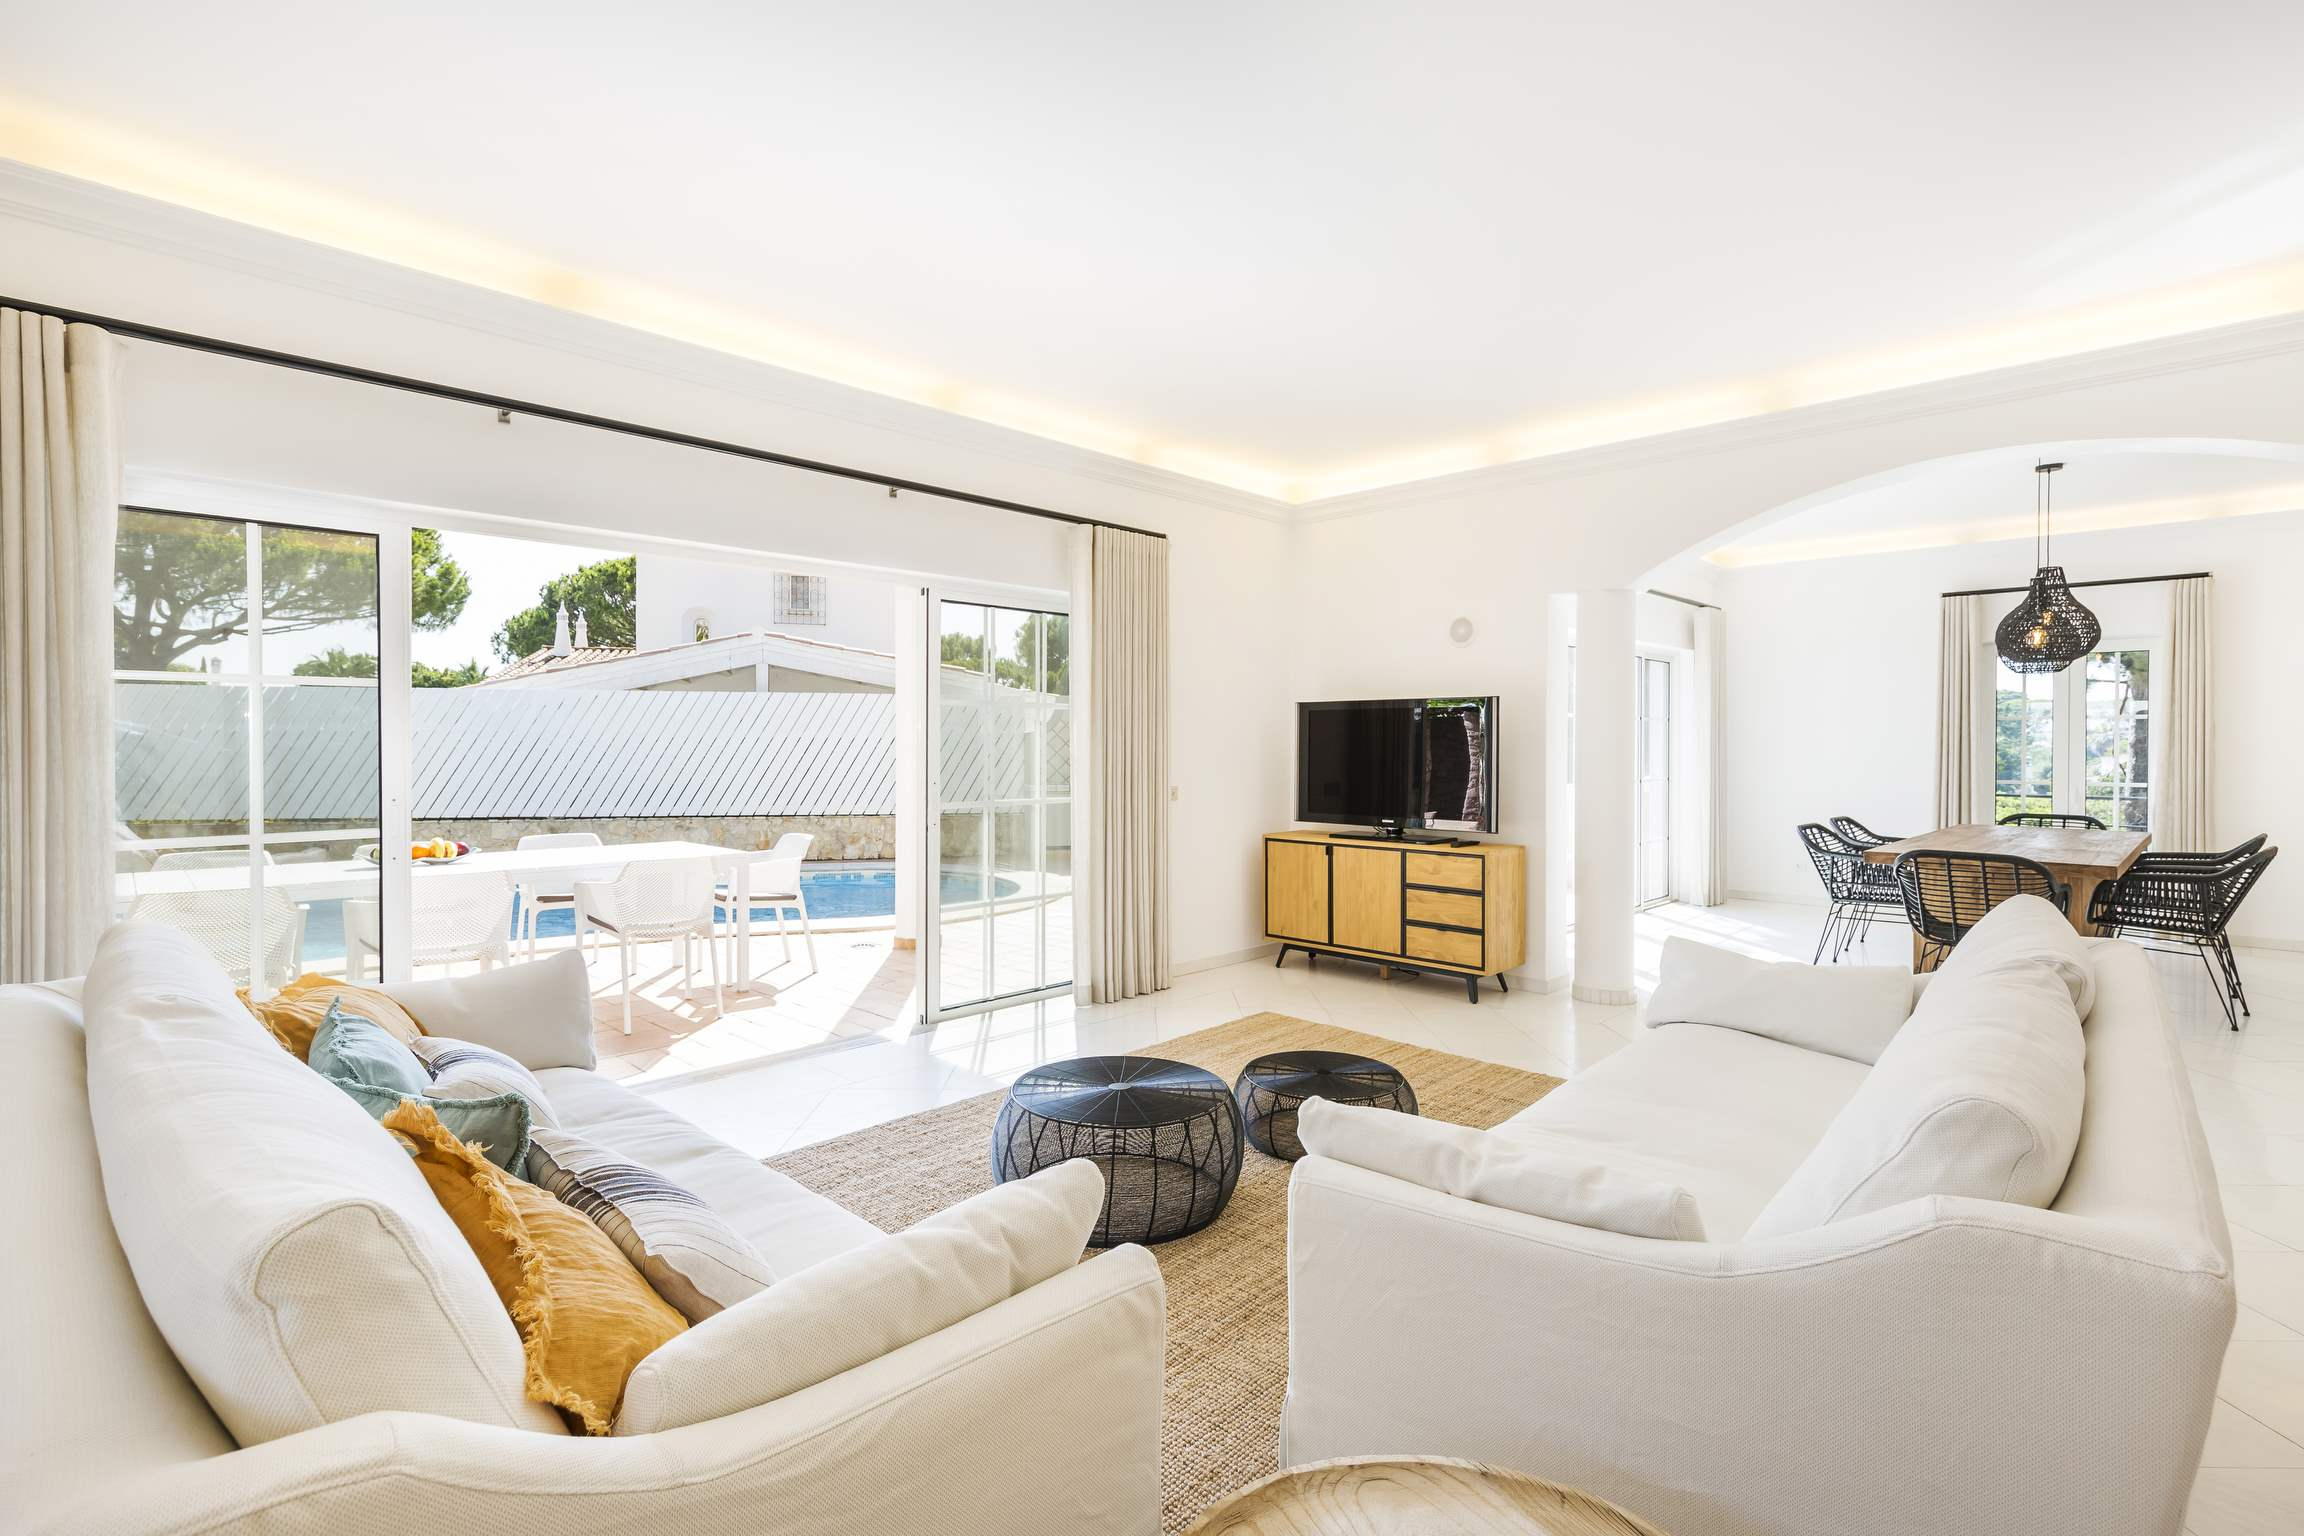 Casa Potes, 5 bedroom villa in Vale do Lobo, Algarve Photo #3